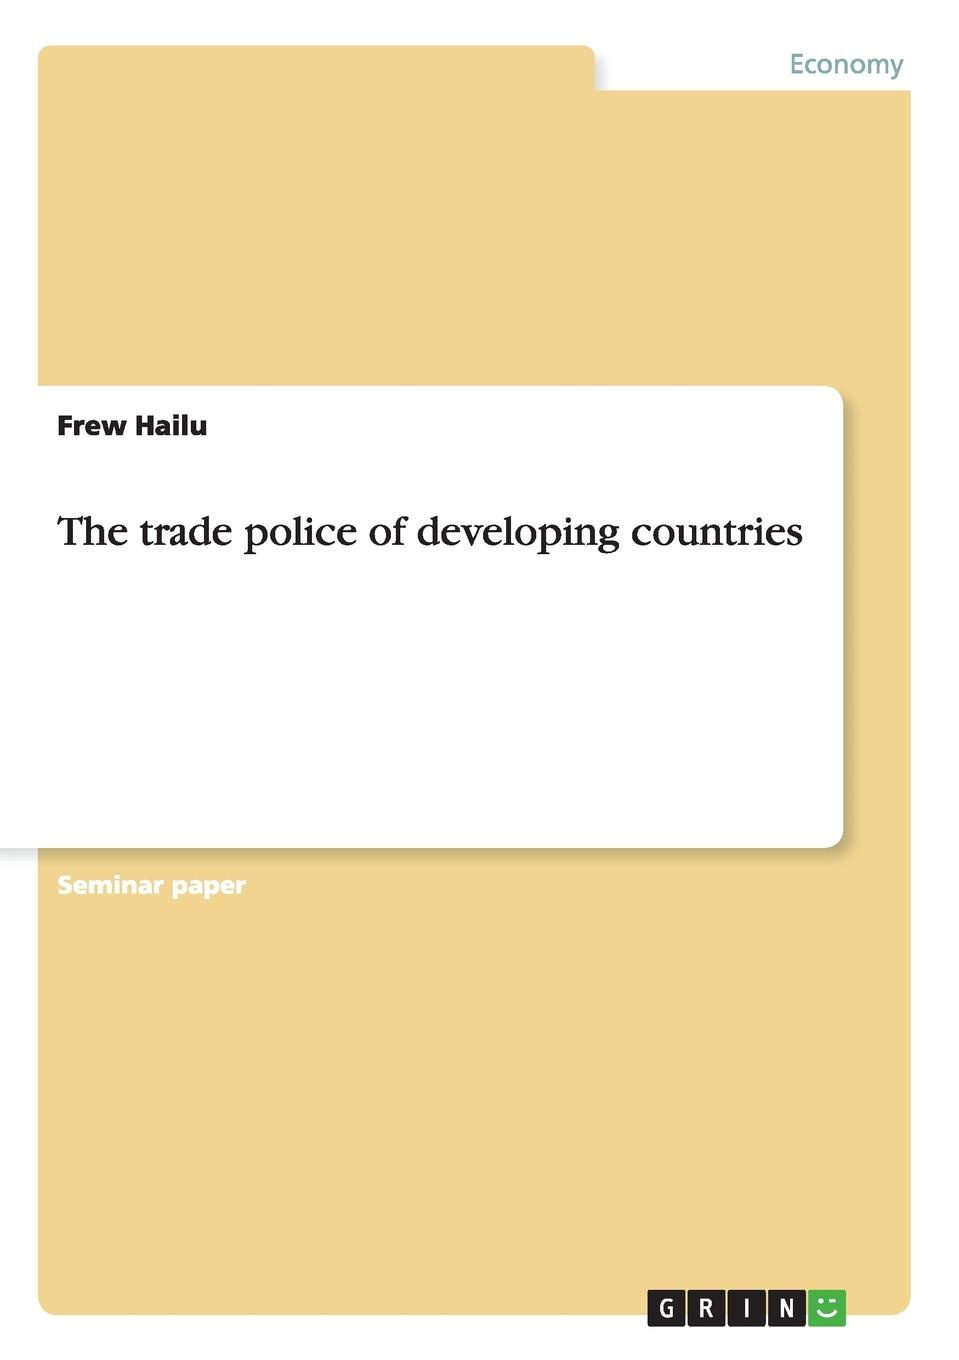 Frew Hailu The trade police of developing countries assessment of interest rates in see countries during crisis